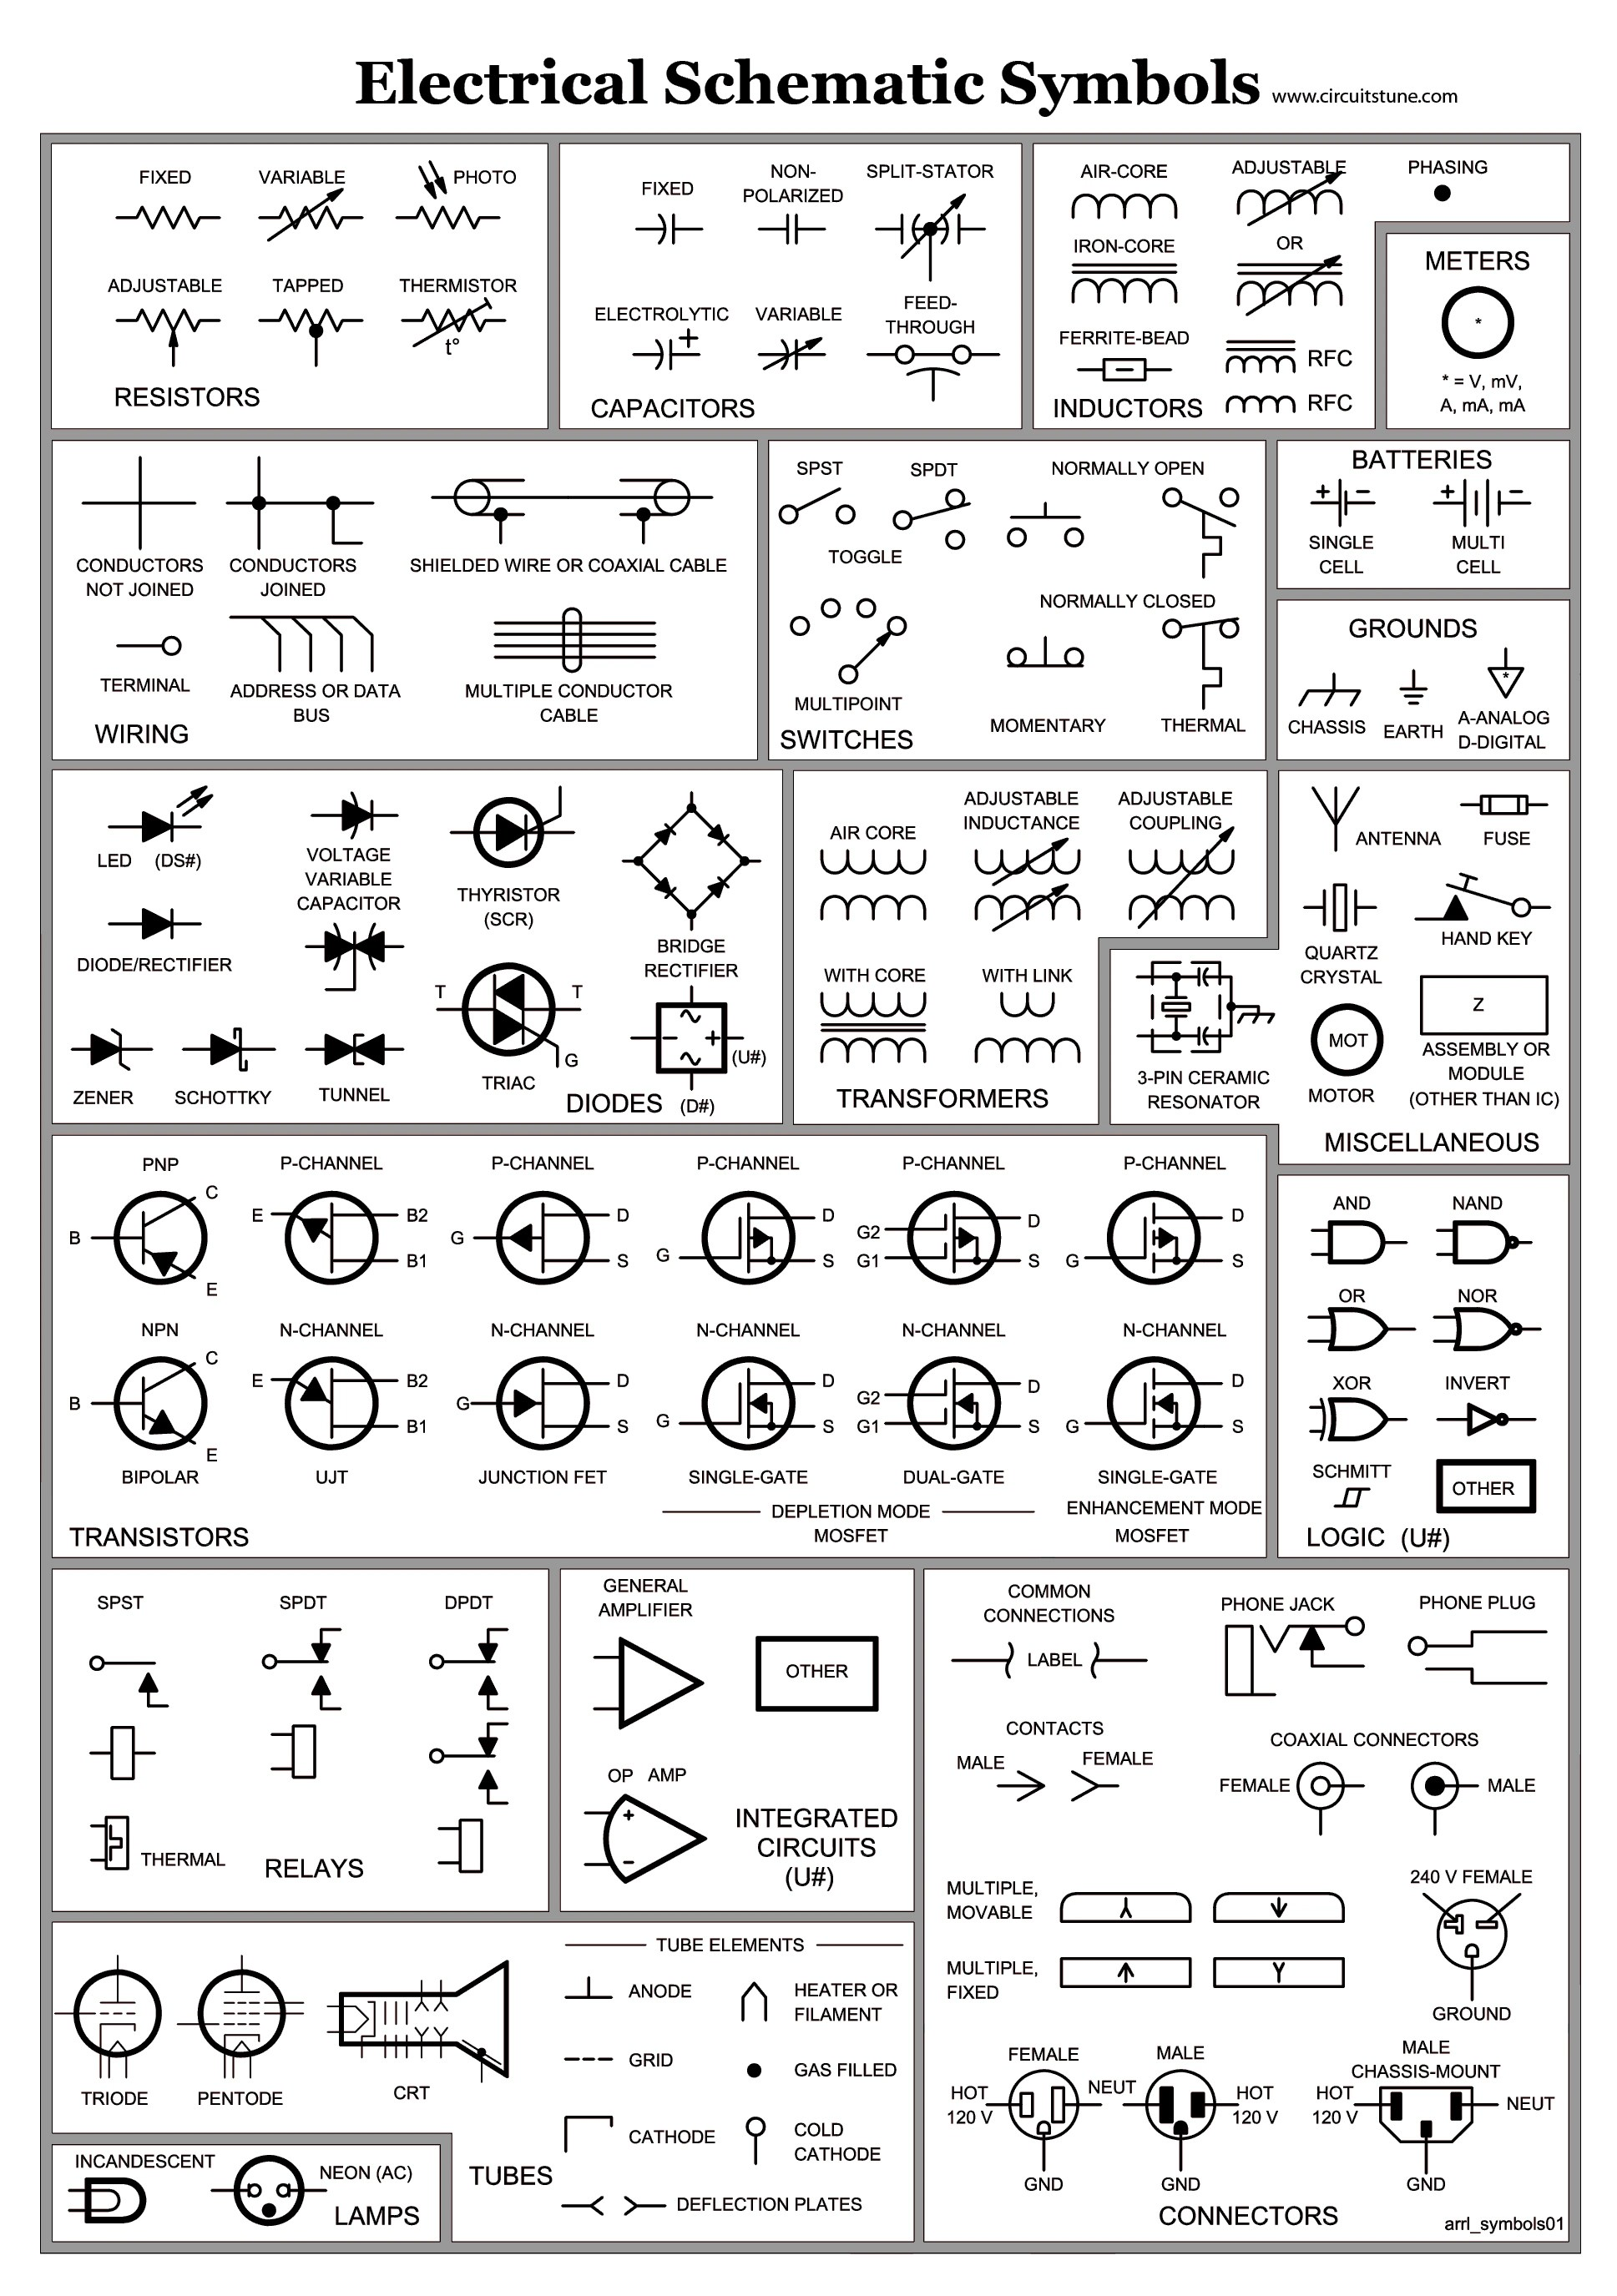 switch wiring diagram symbols wiring diagram blogs wiring diagram symbols chart circuit schematic symbols bmet wiki [ 1937 x 2751 Pixel ]